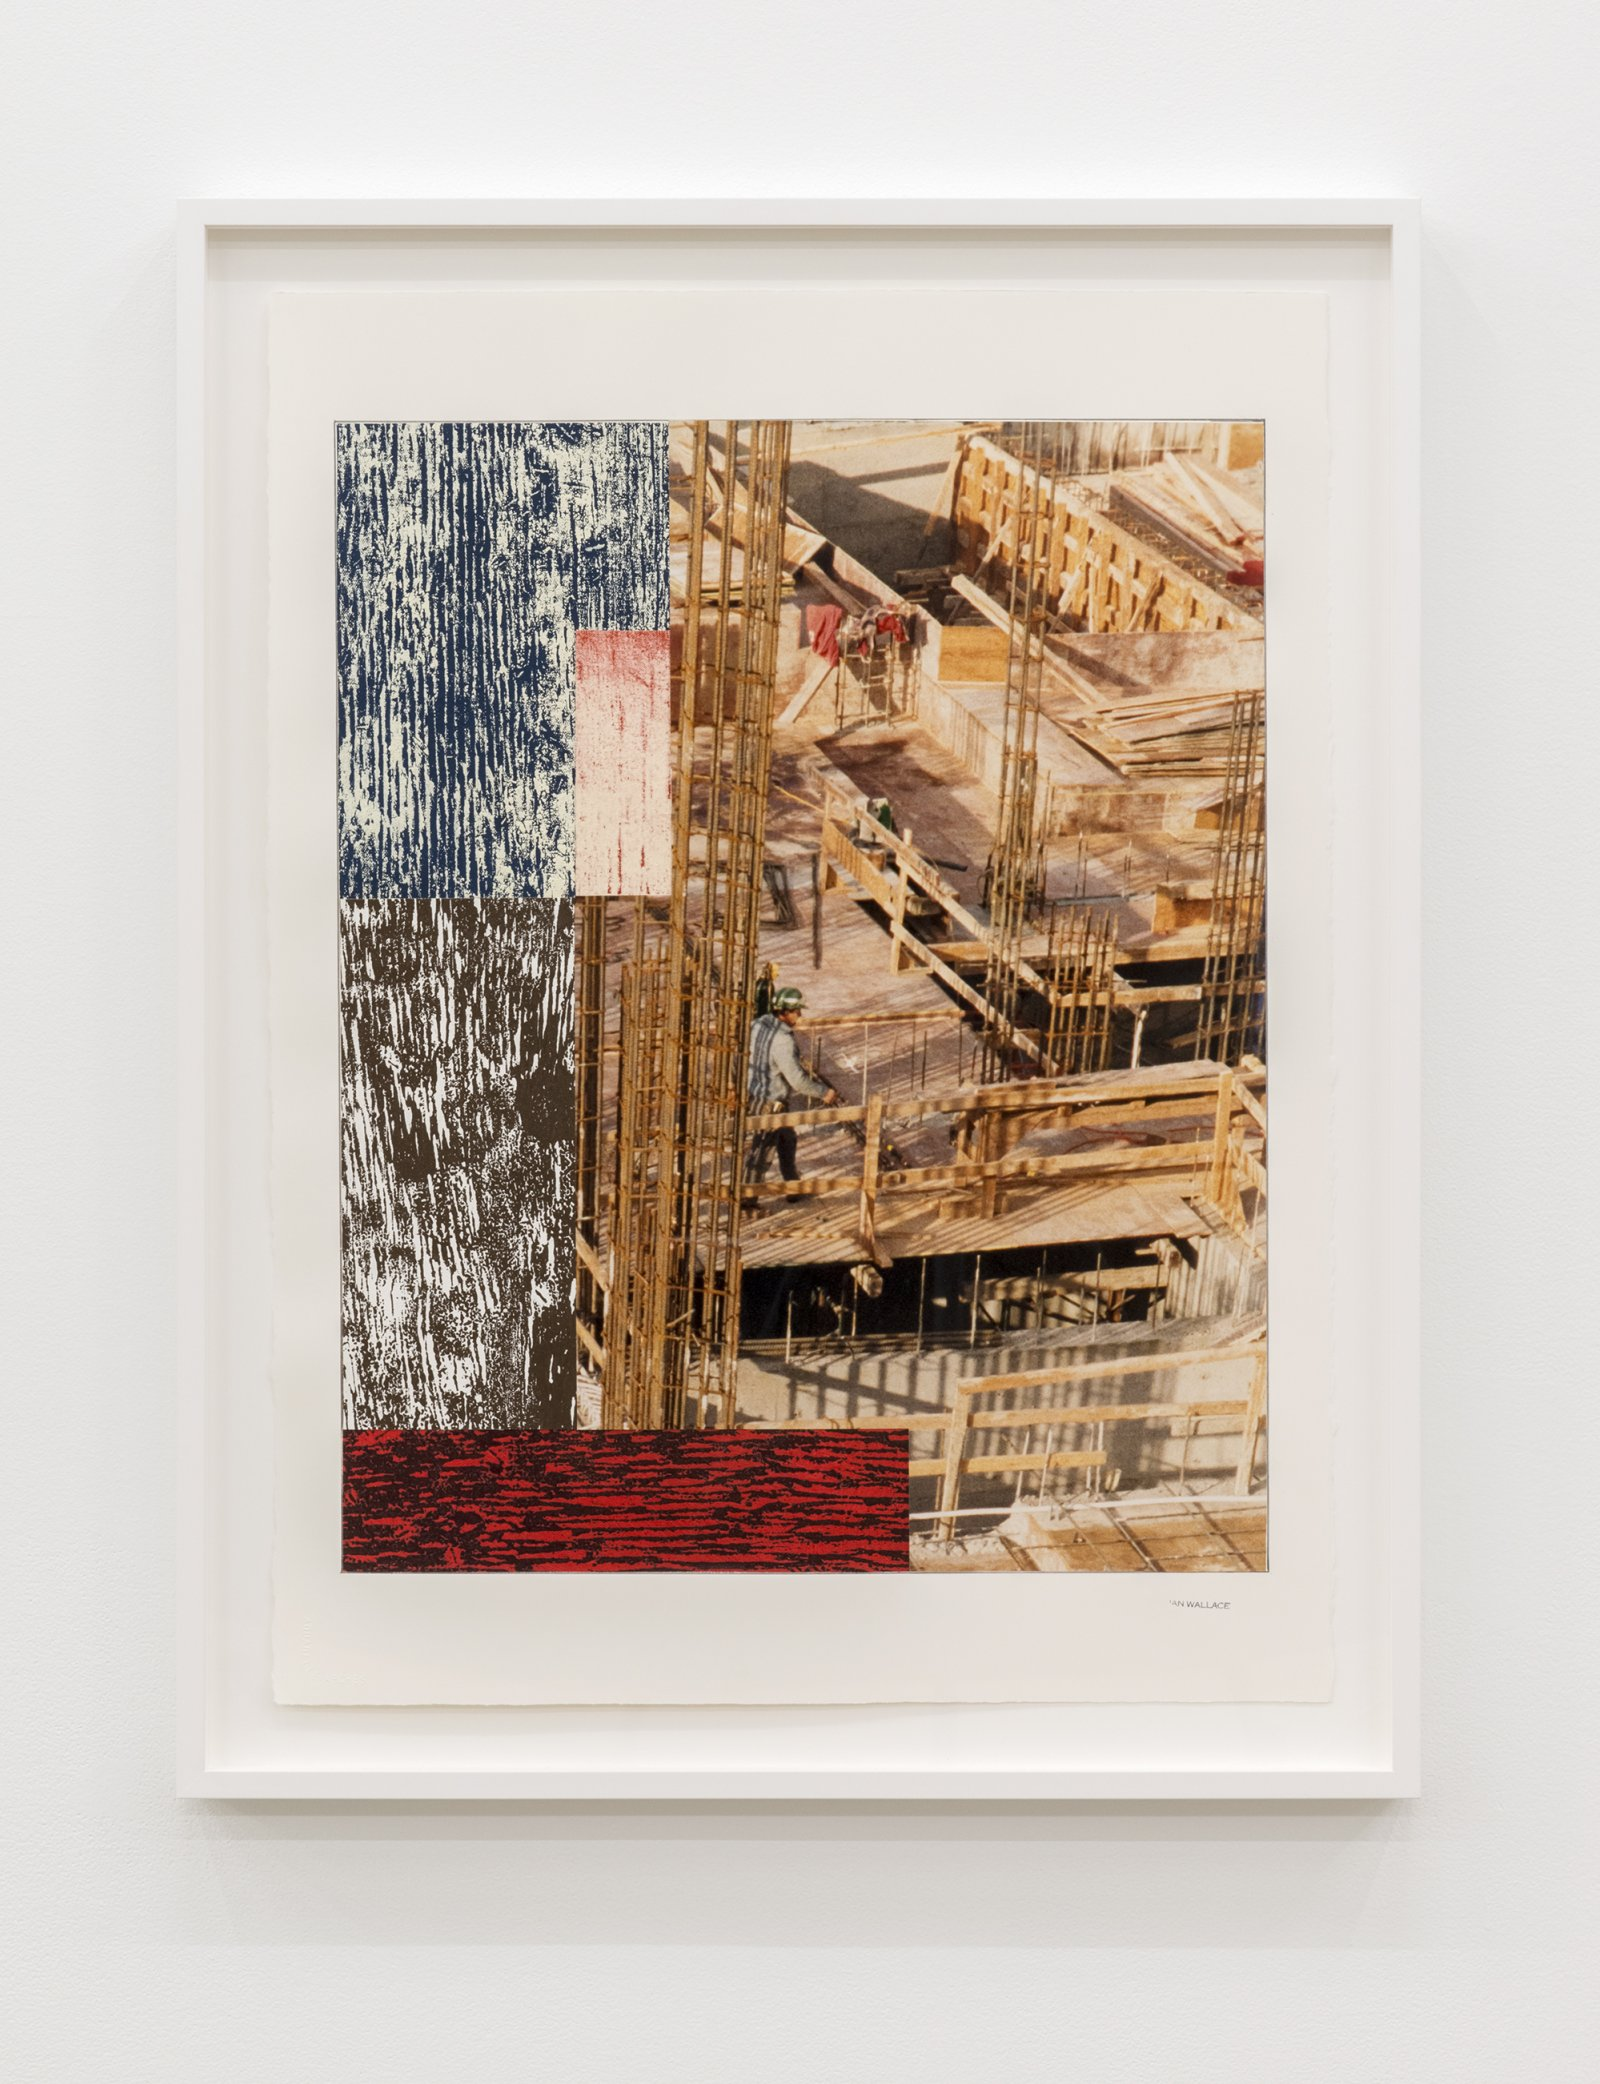 Ian Wallace, Study for Composition with Construction Site I, 1992–2012, paper, pencil, acrylic, photograph, ink, monoprint on canvas, 30 x 23 in. (77 x 57 cm) by Ian Wallace